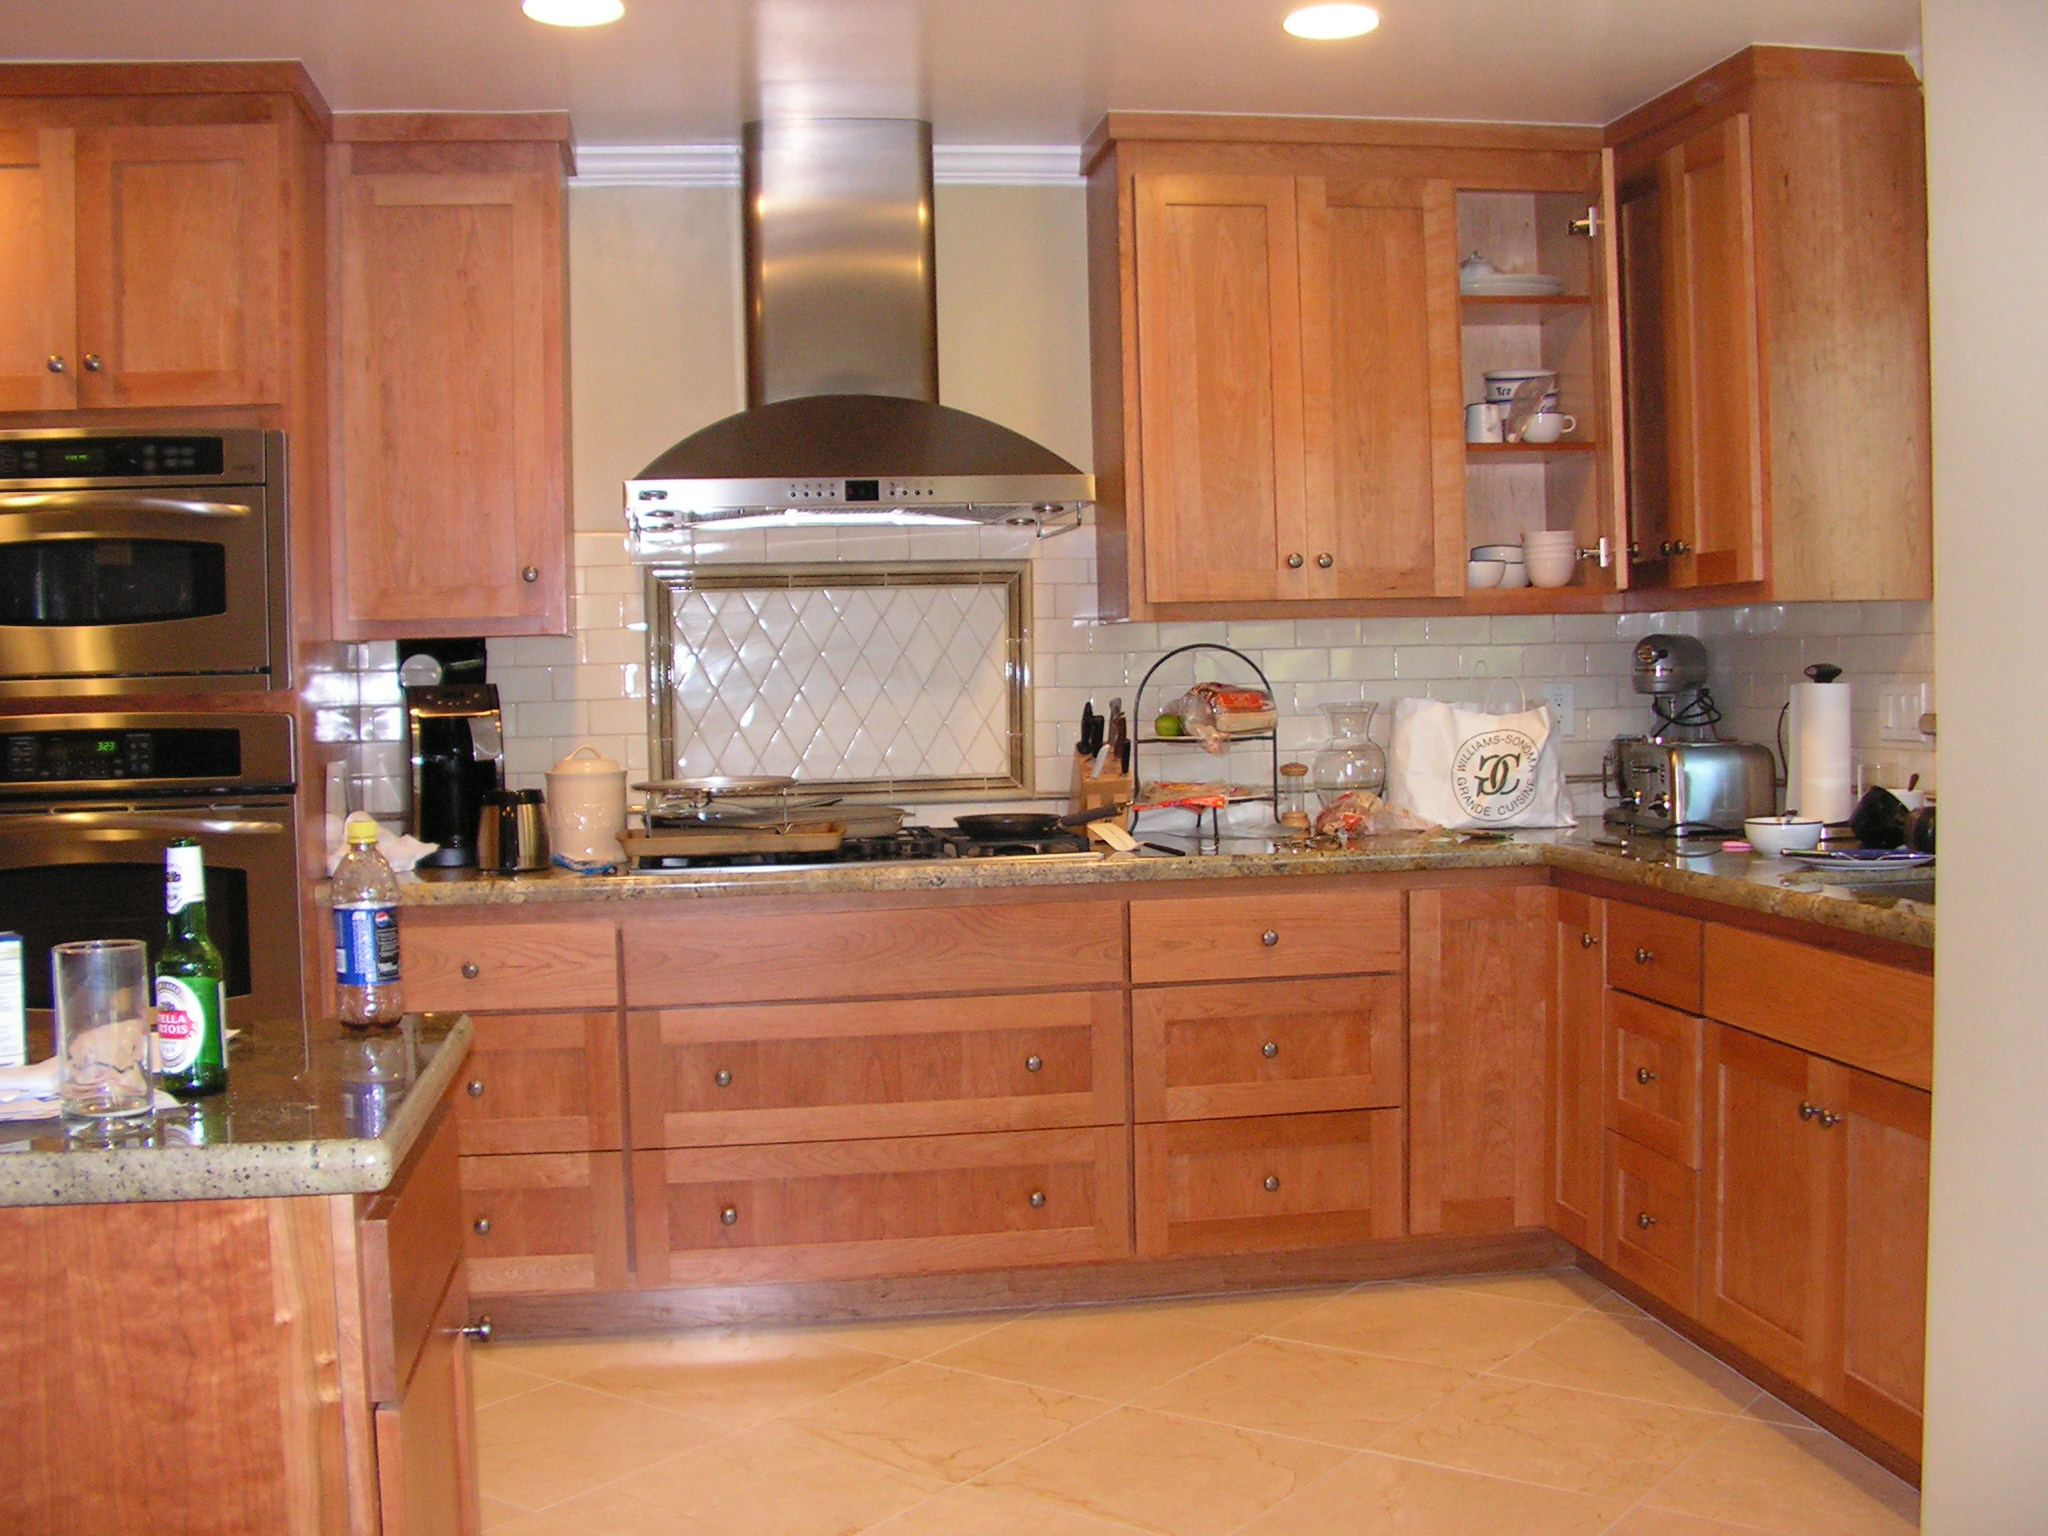 Kitchen Remodeling Construction With Integrity General Contractor